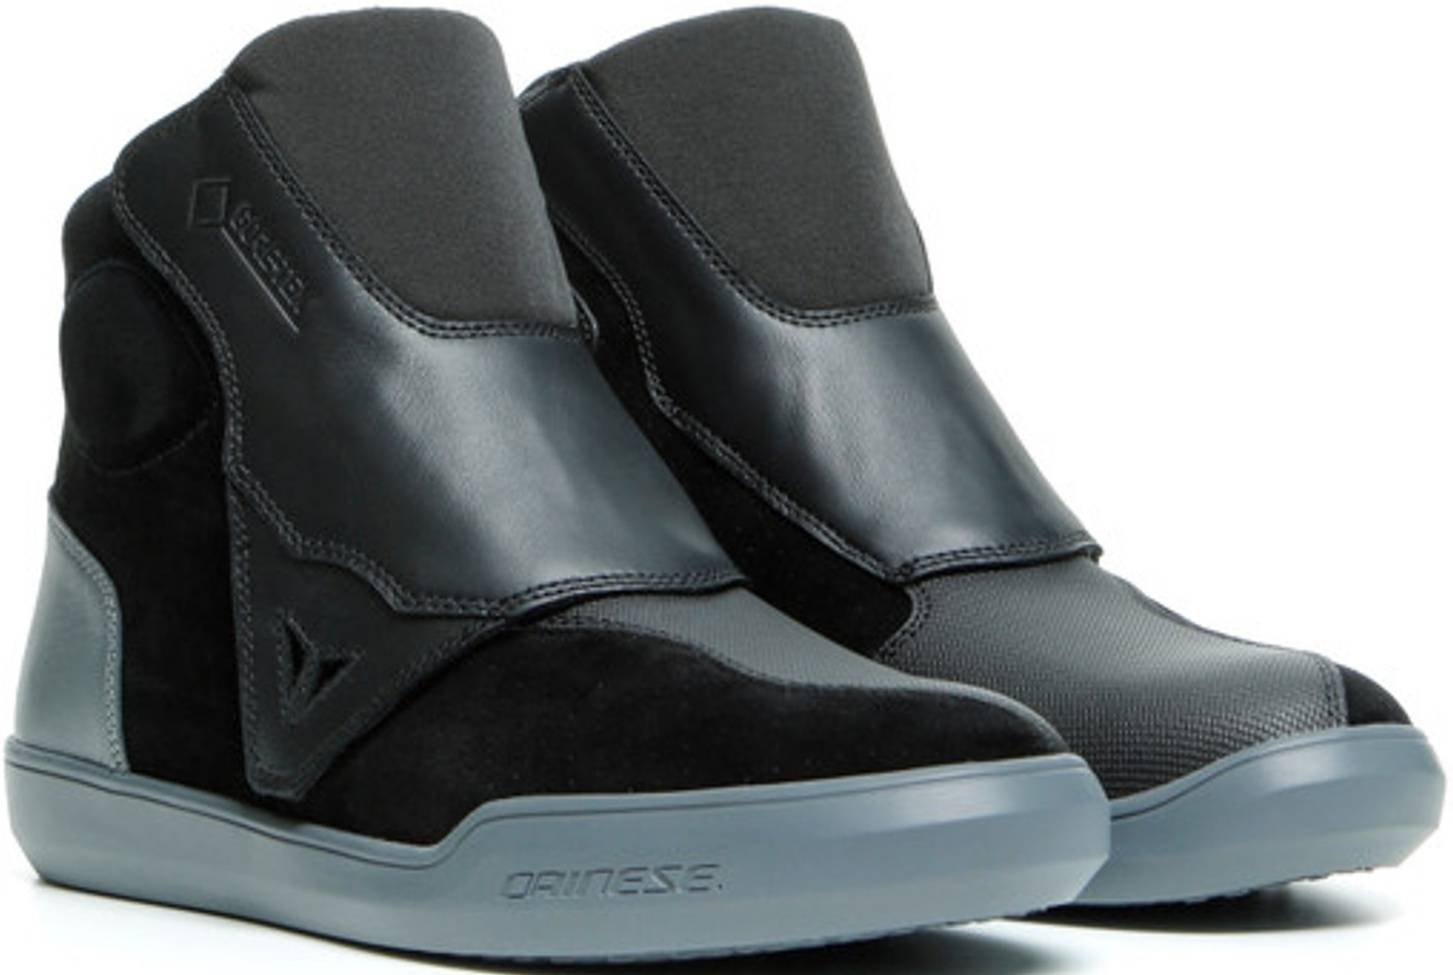 Dainese Dover Gore-Tex Motorcycle Shoes Black White 47